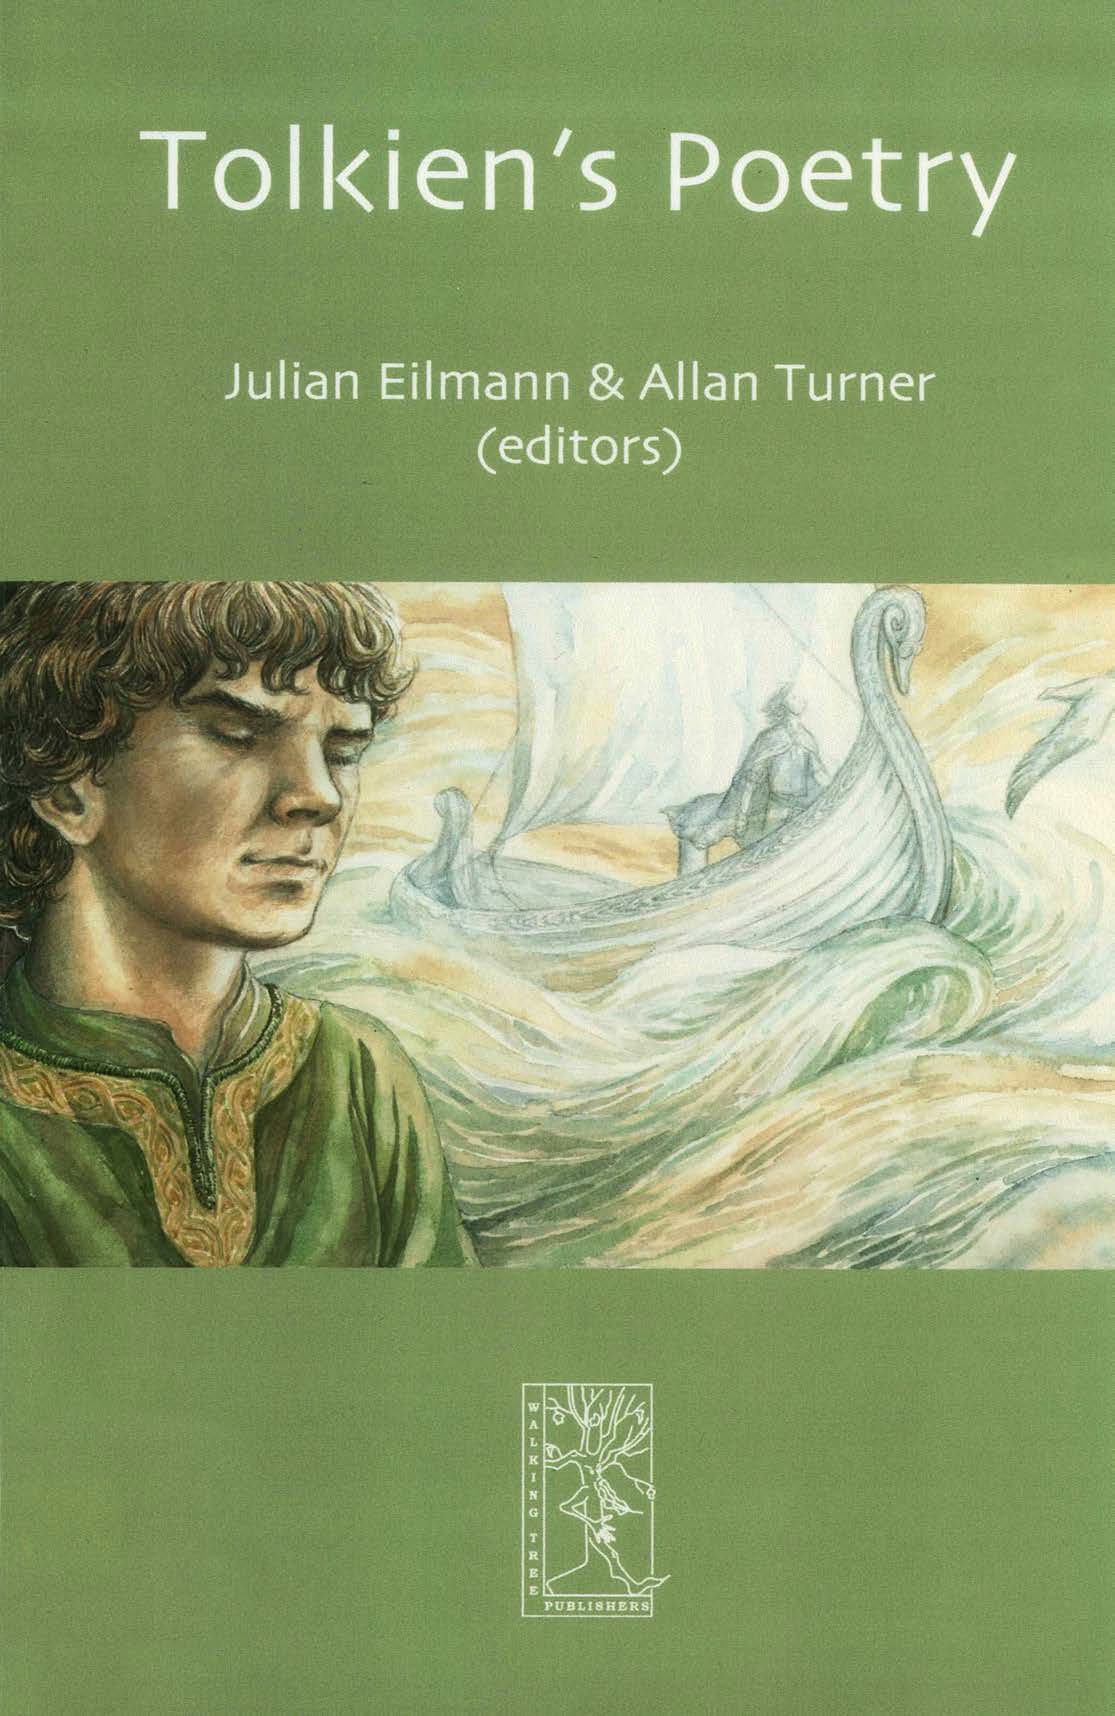 Tolkien's Poetry (Cormare Series #28)